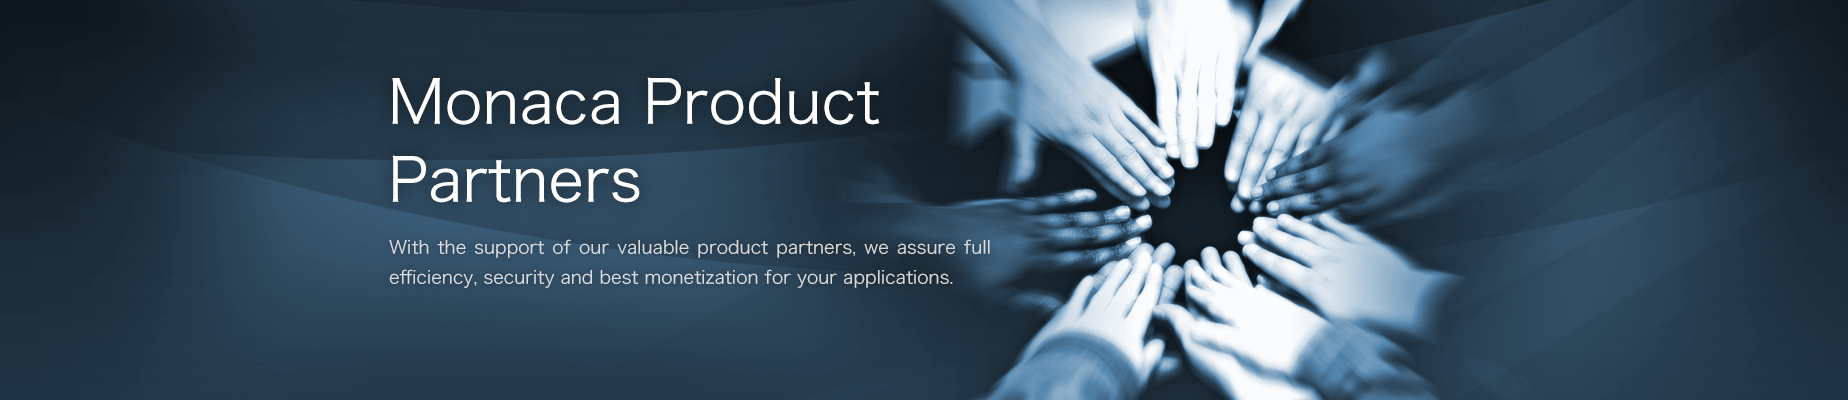 Monaca Product Partners. With the support of our valuable product partners, we assure full efficiency, security and best monetization for your applications.